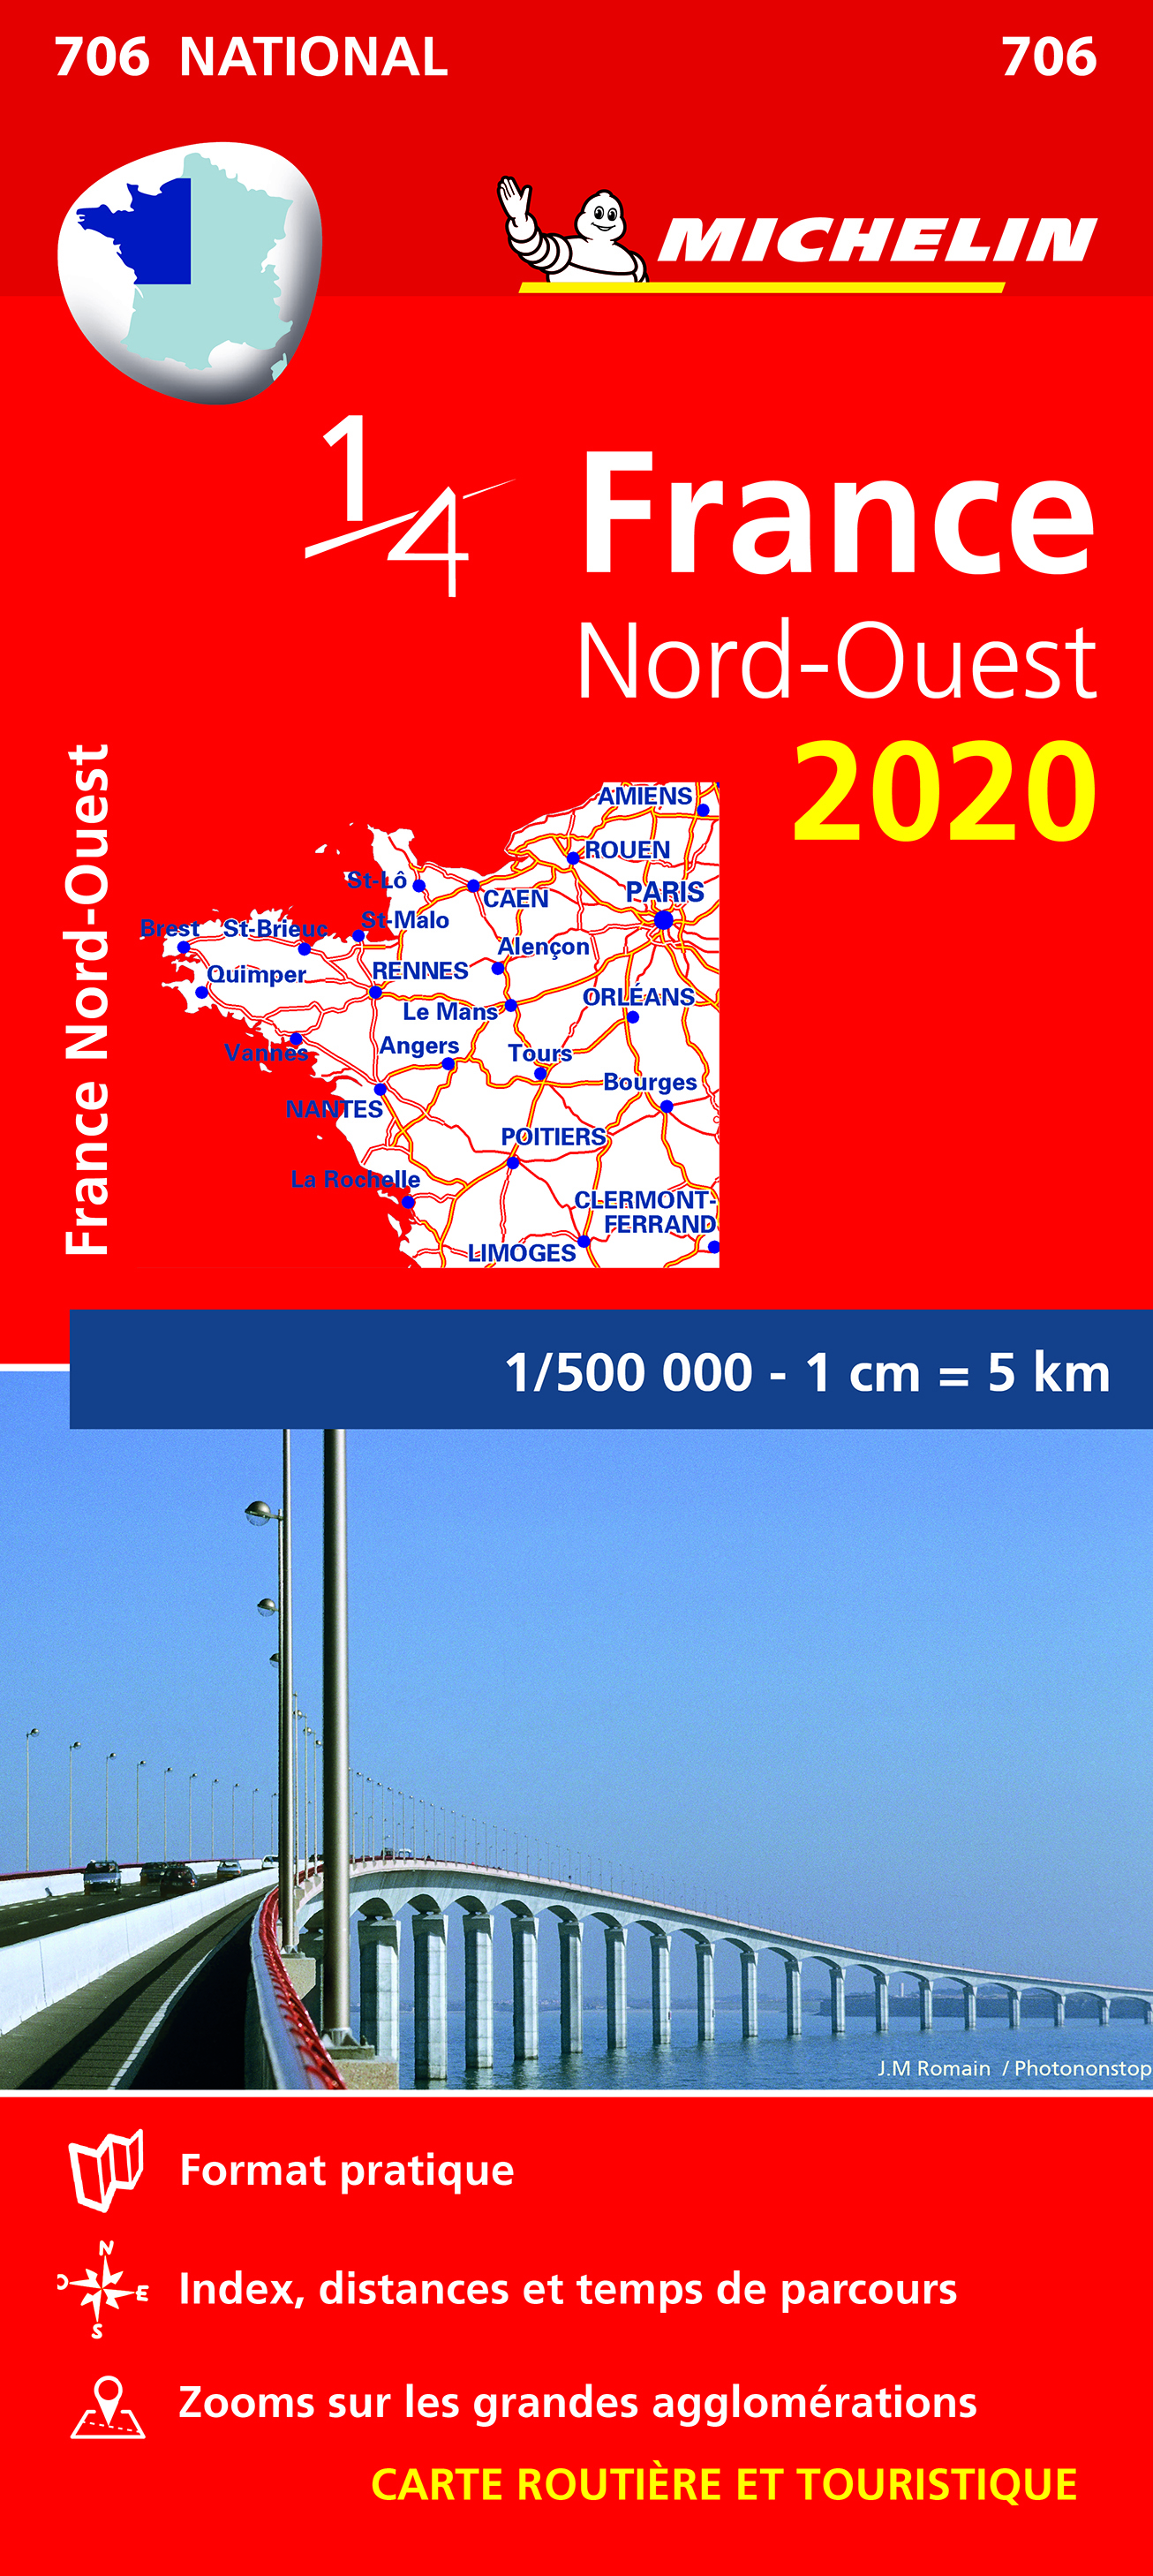 CN 706 FRANCE NORD-OUEST 2020